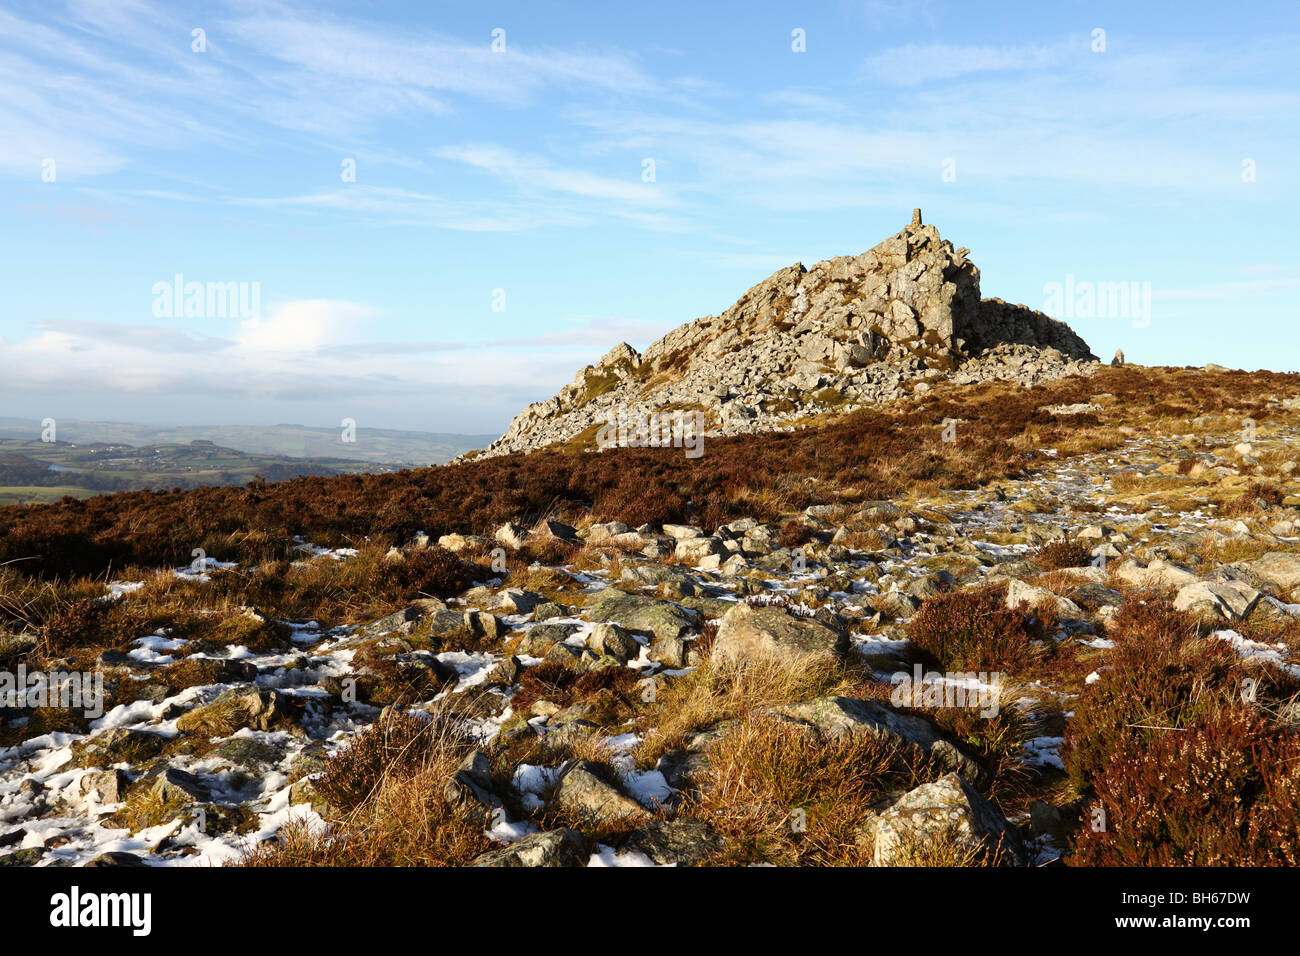 Manstone Rock, high point along the Stiperstones ridge in the Shropshire Hills AONB - Stock Image